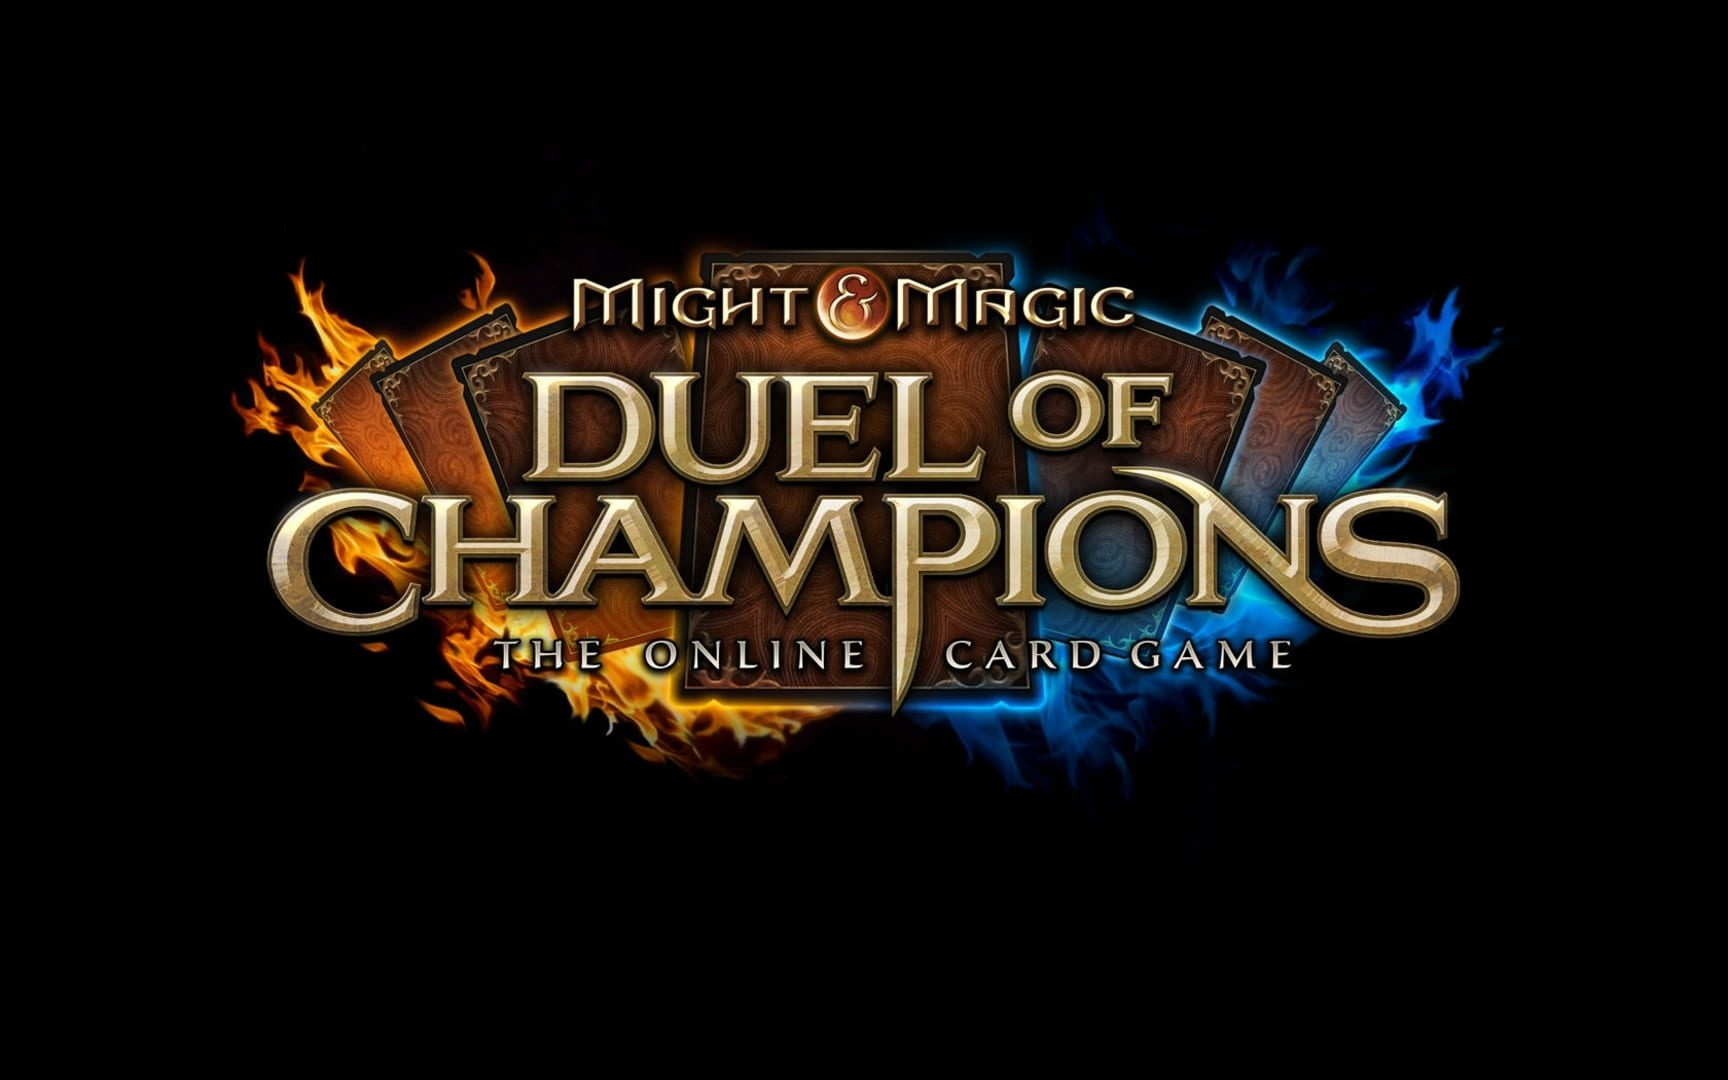 buy Might & Magic: Duel of Champions cd key for all platform